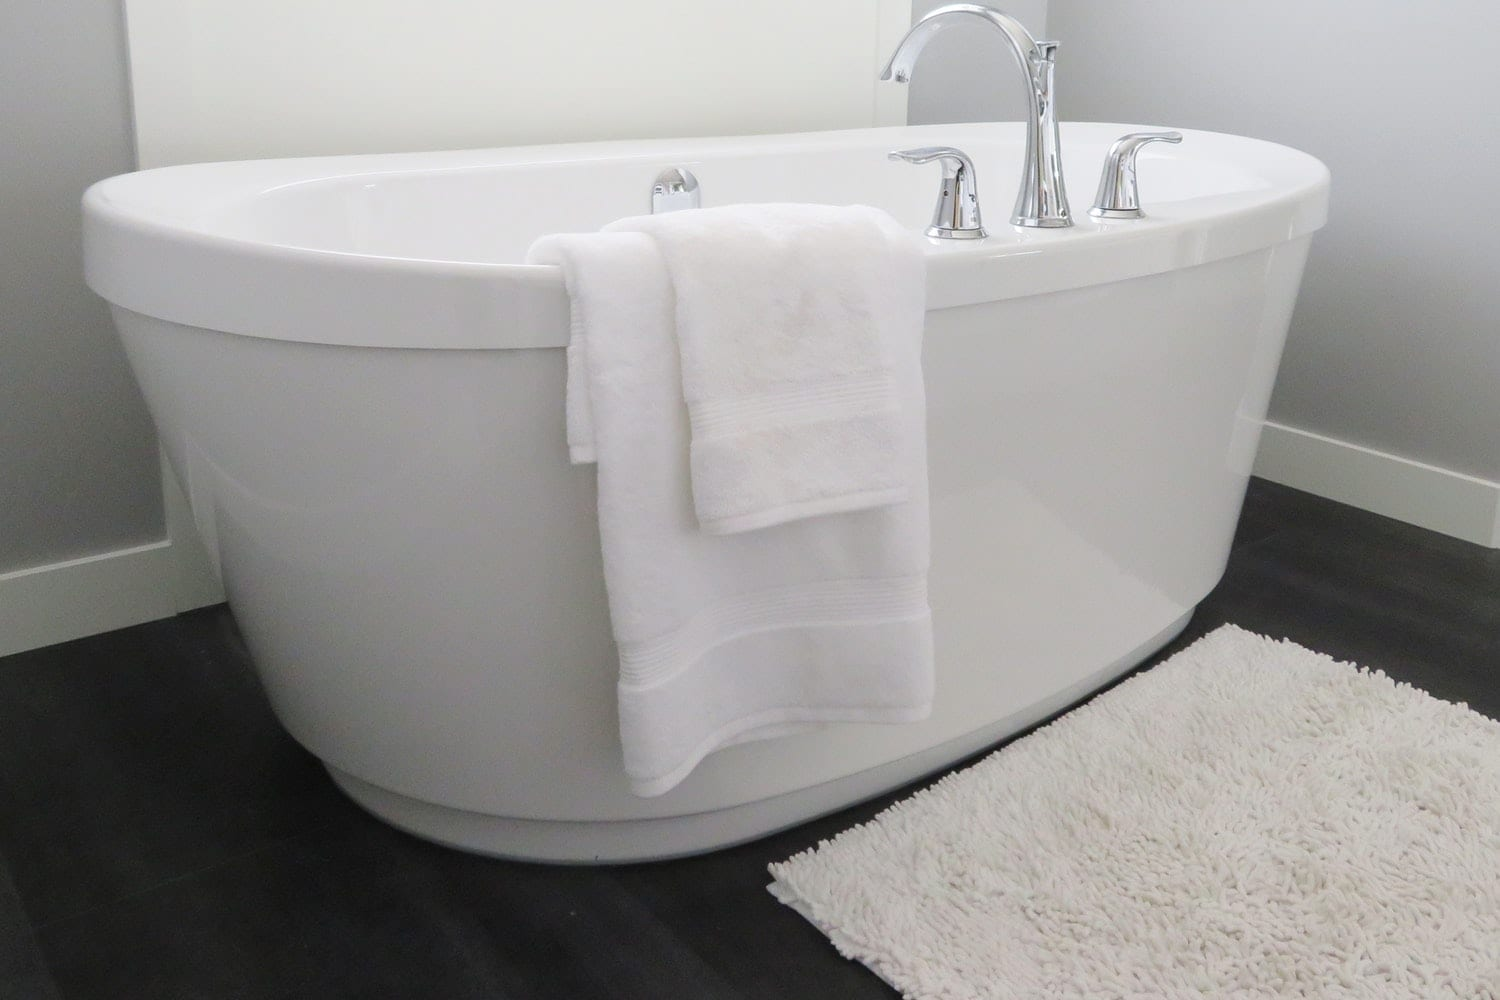 Bathtub with towel